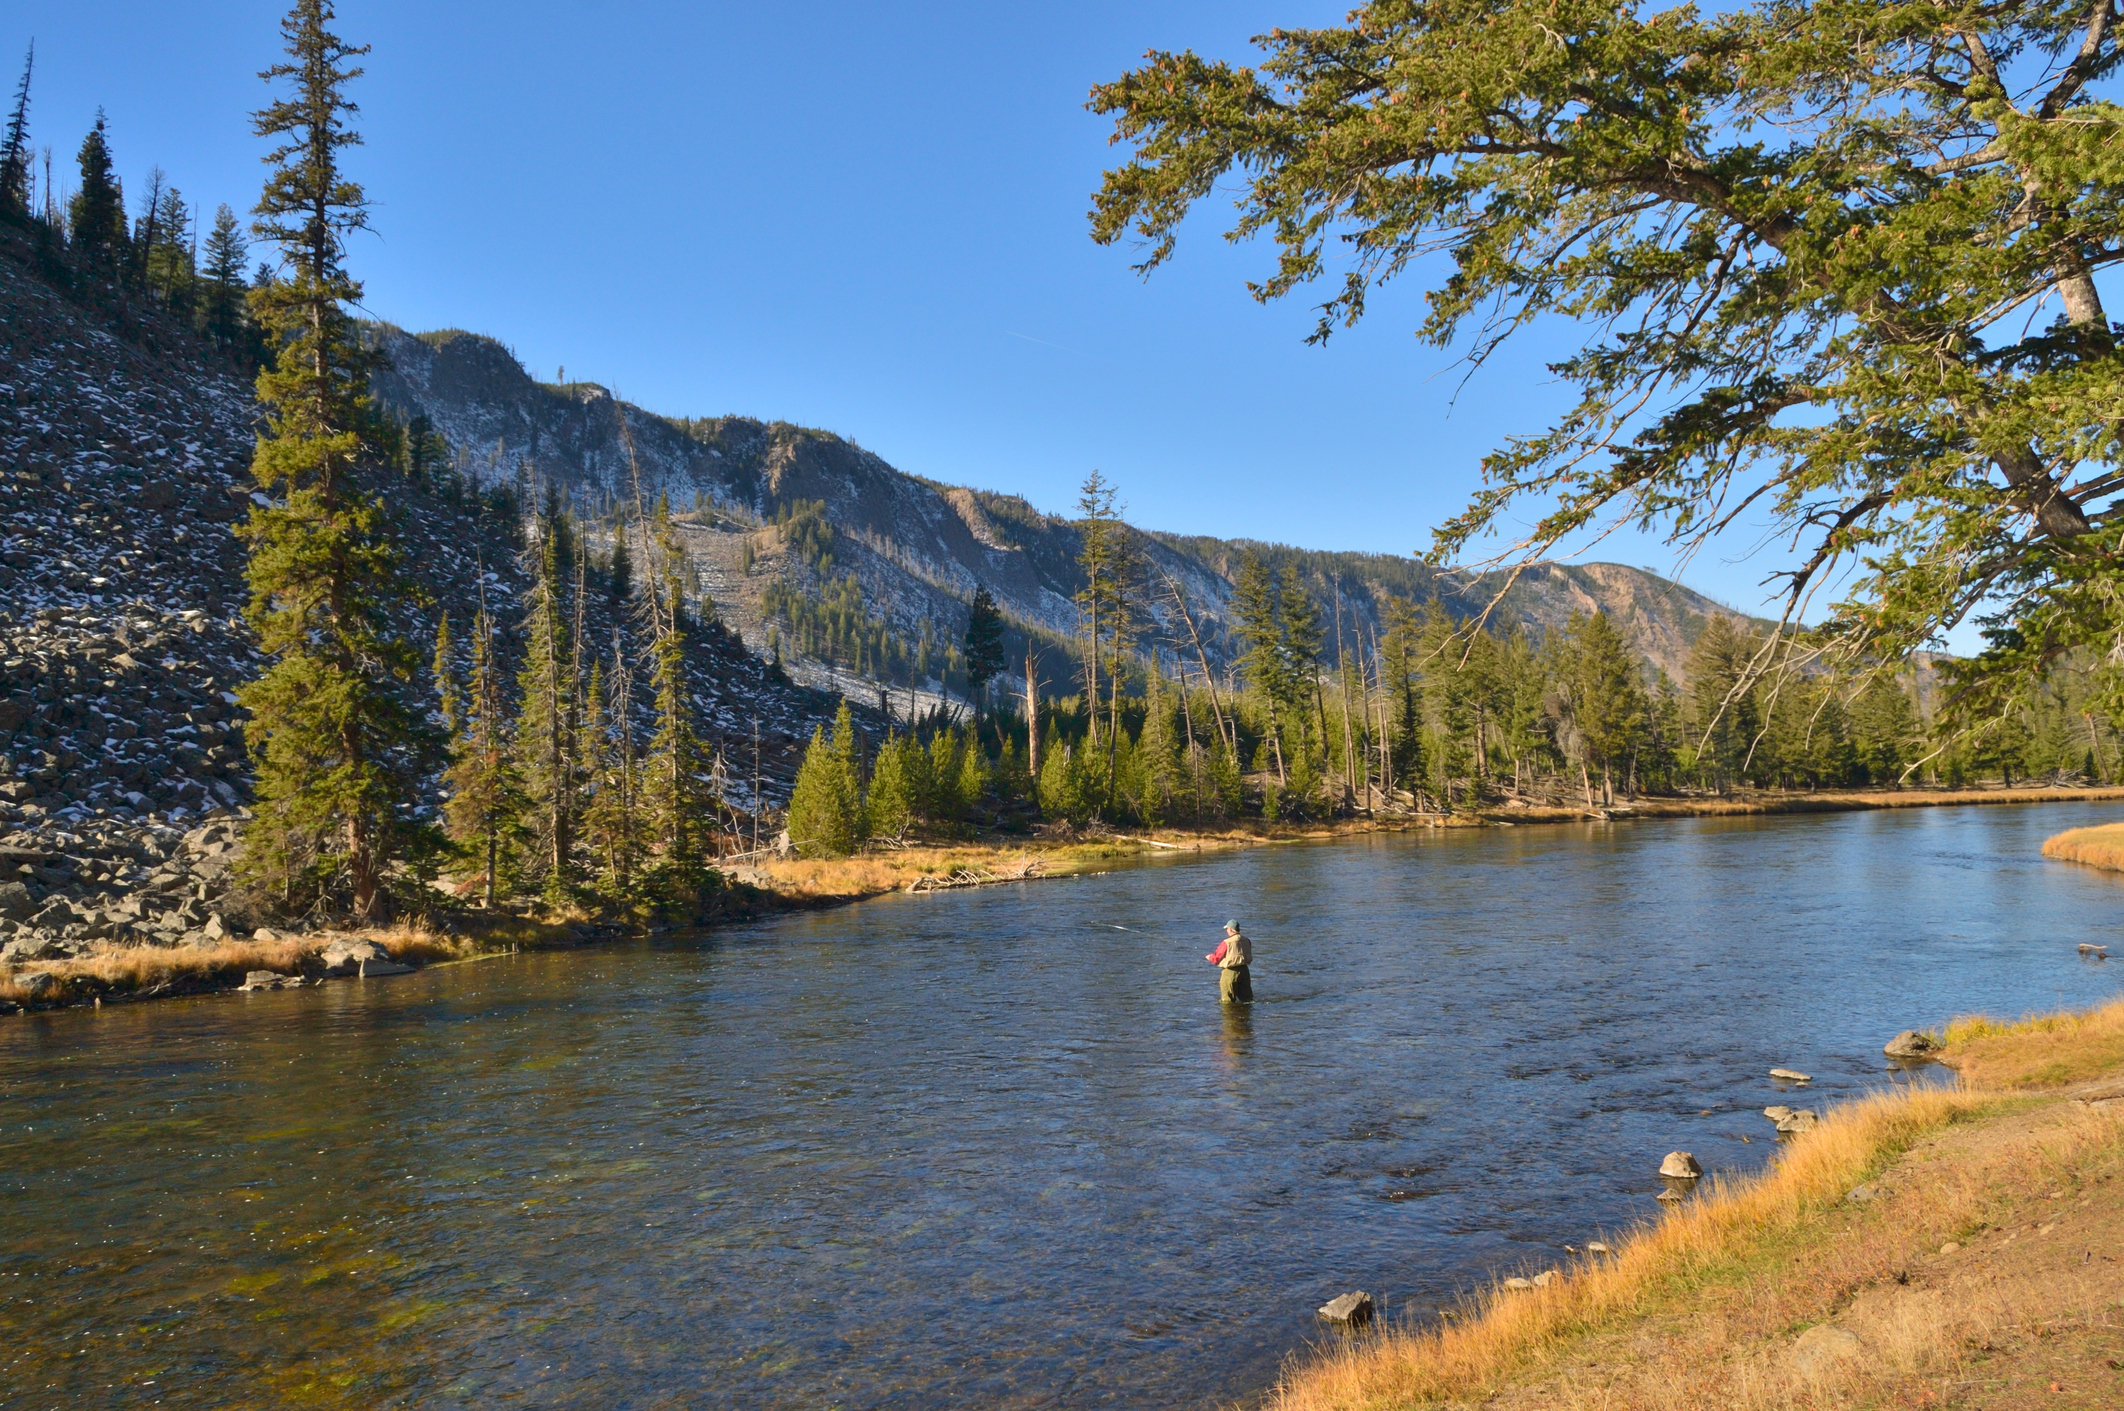 A retired man fly fishing in the Yellowstone National Park is at peace with his world and enjoys the solitude and beauty of this leisure activity on a brisk fall morning